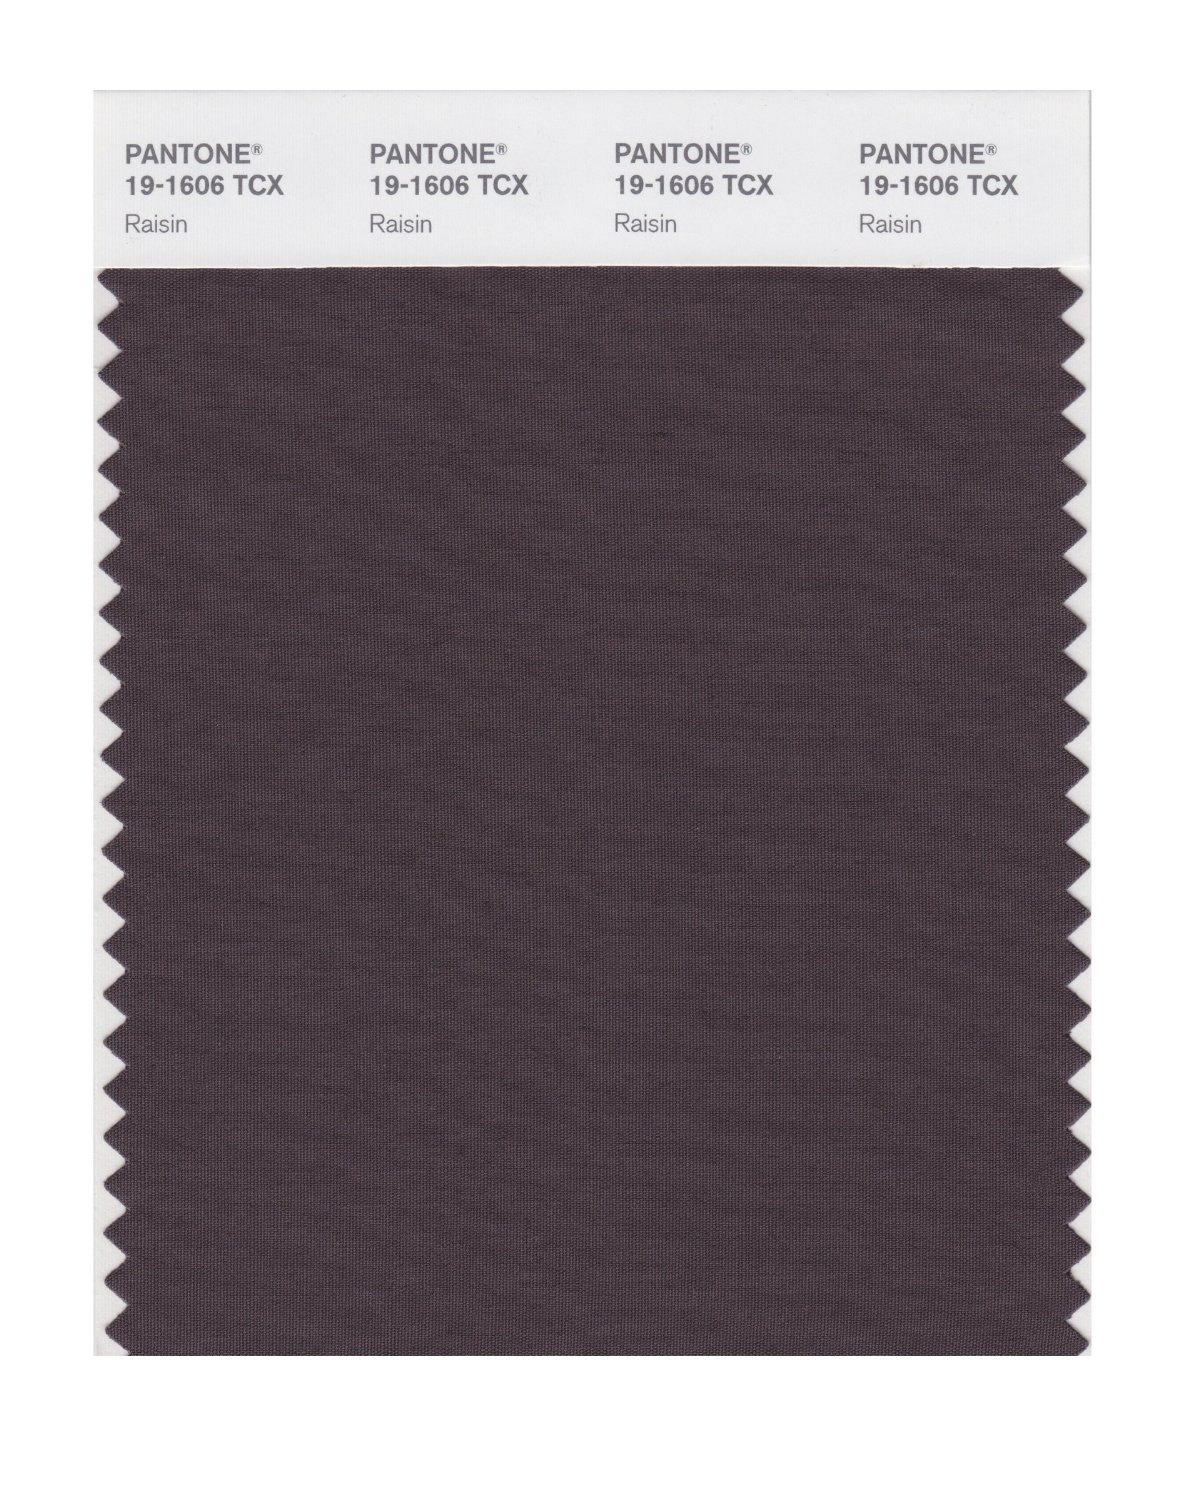 Pantone Smart Swatch 19-1606 Raisin